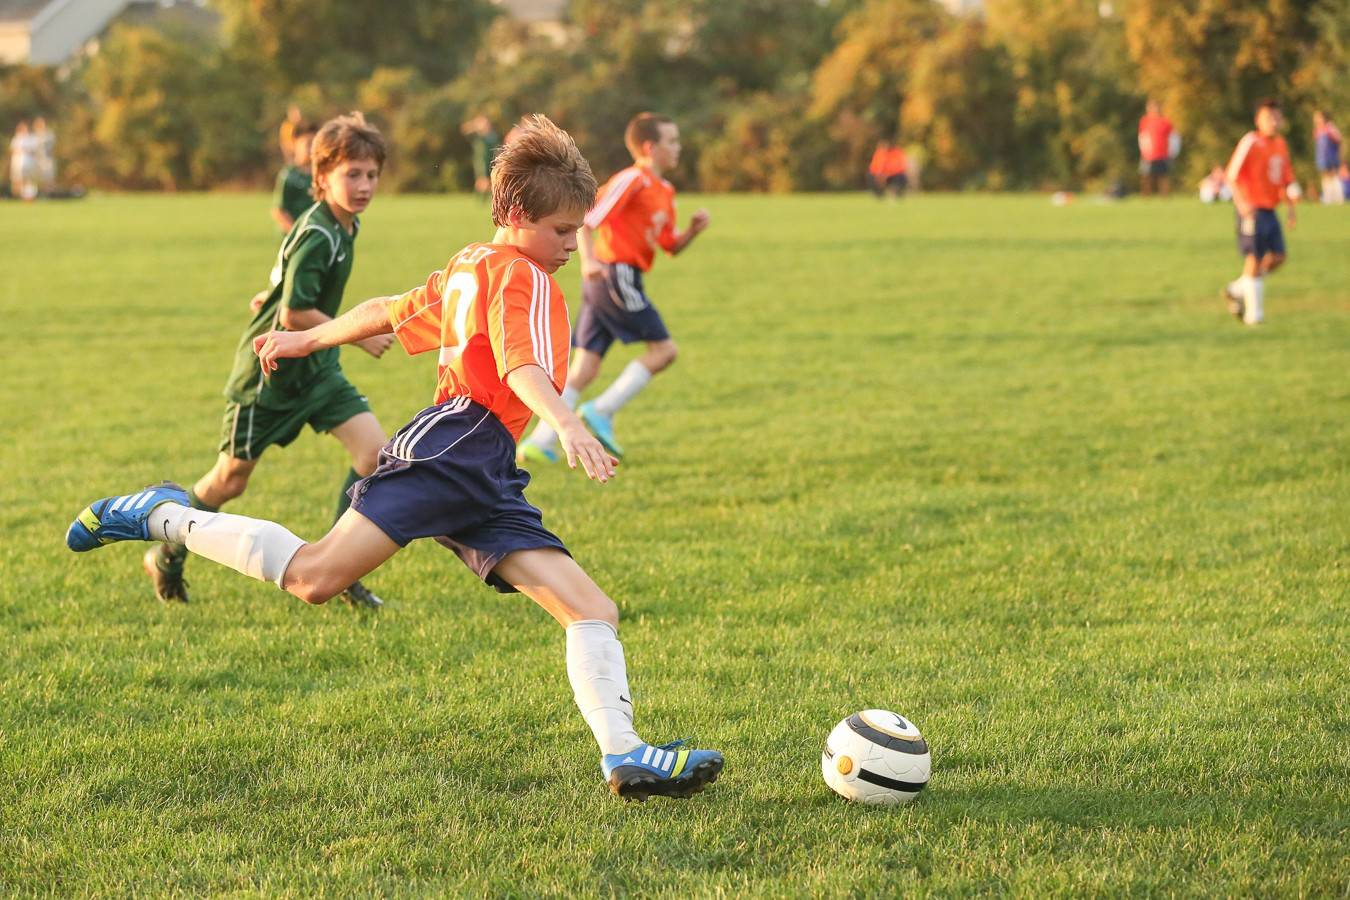 Ethan Conley, 13, of Carol Stream, is one of 12 Chicago-area youth soccer players chosen from a field of 480 at a camp in Schaumburg last summer who will be traveling to Barcelona this month for the FC Barcelona Escala International Tournament.